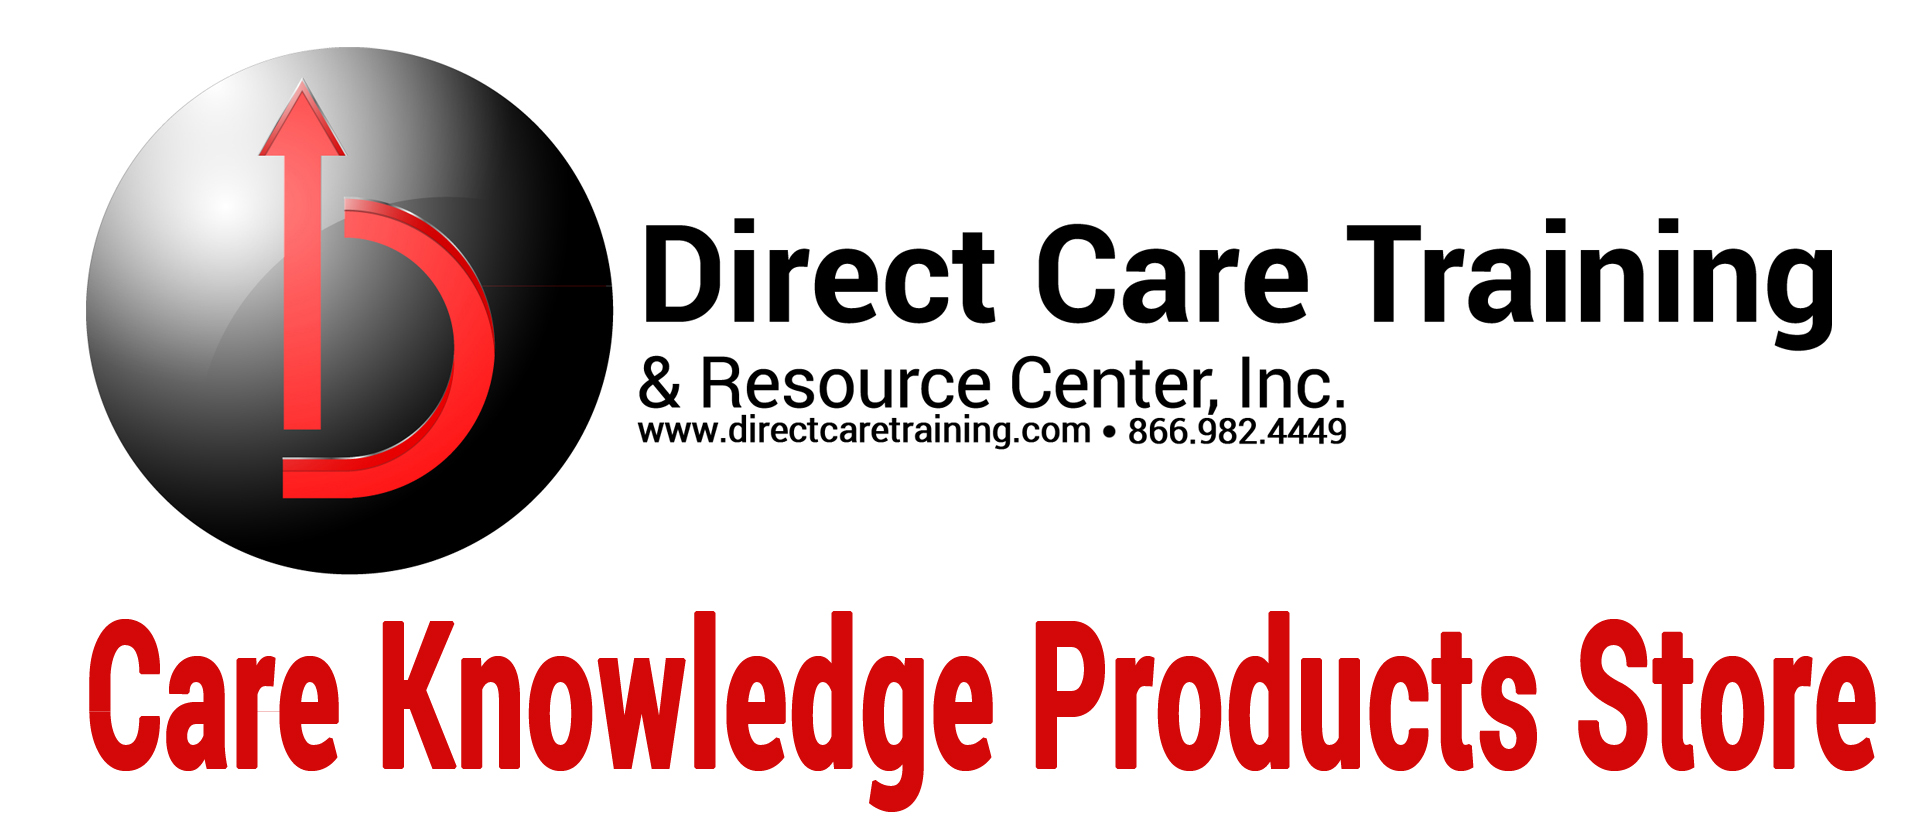 PIC - DCTC LOGO CARE PRODUCTS KNOWLEDGE STORE